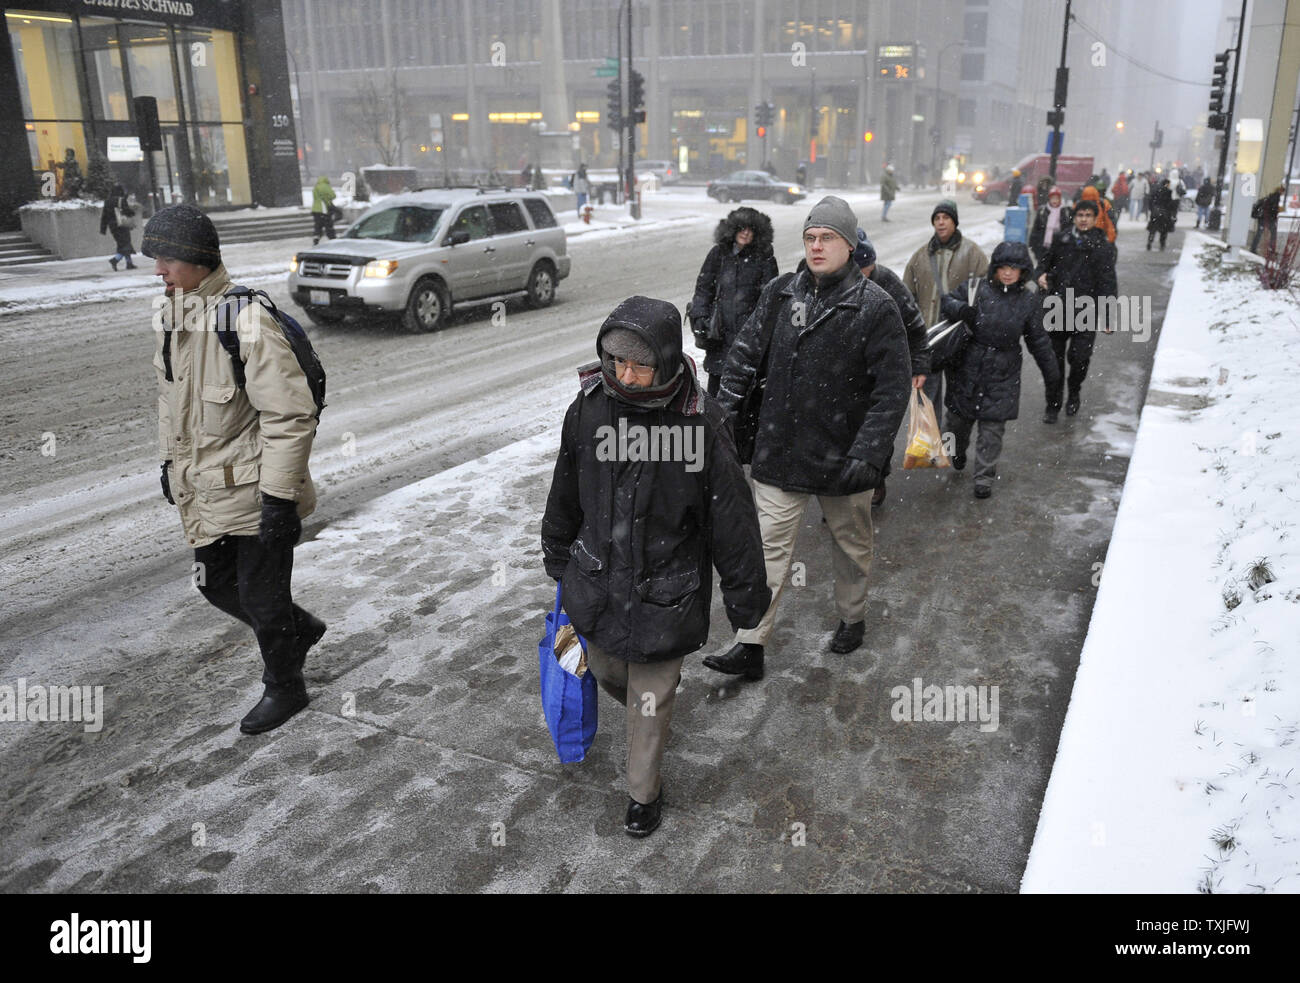 Pedestrians walk through the streets as a major snow storm hits on February 1, 2011 in Chicago. Up to two feet of snow is expected to fall in the Chicago area as a winter storm created blizzard conditions from the southern Great Plains to the upper midwest on Tuesday.     UPI/Brian Kersey - Stock Image